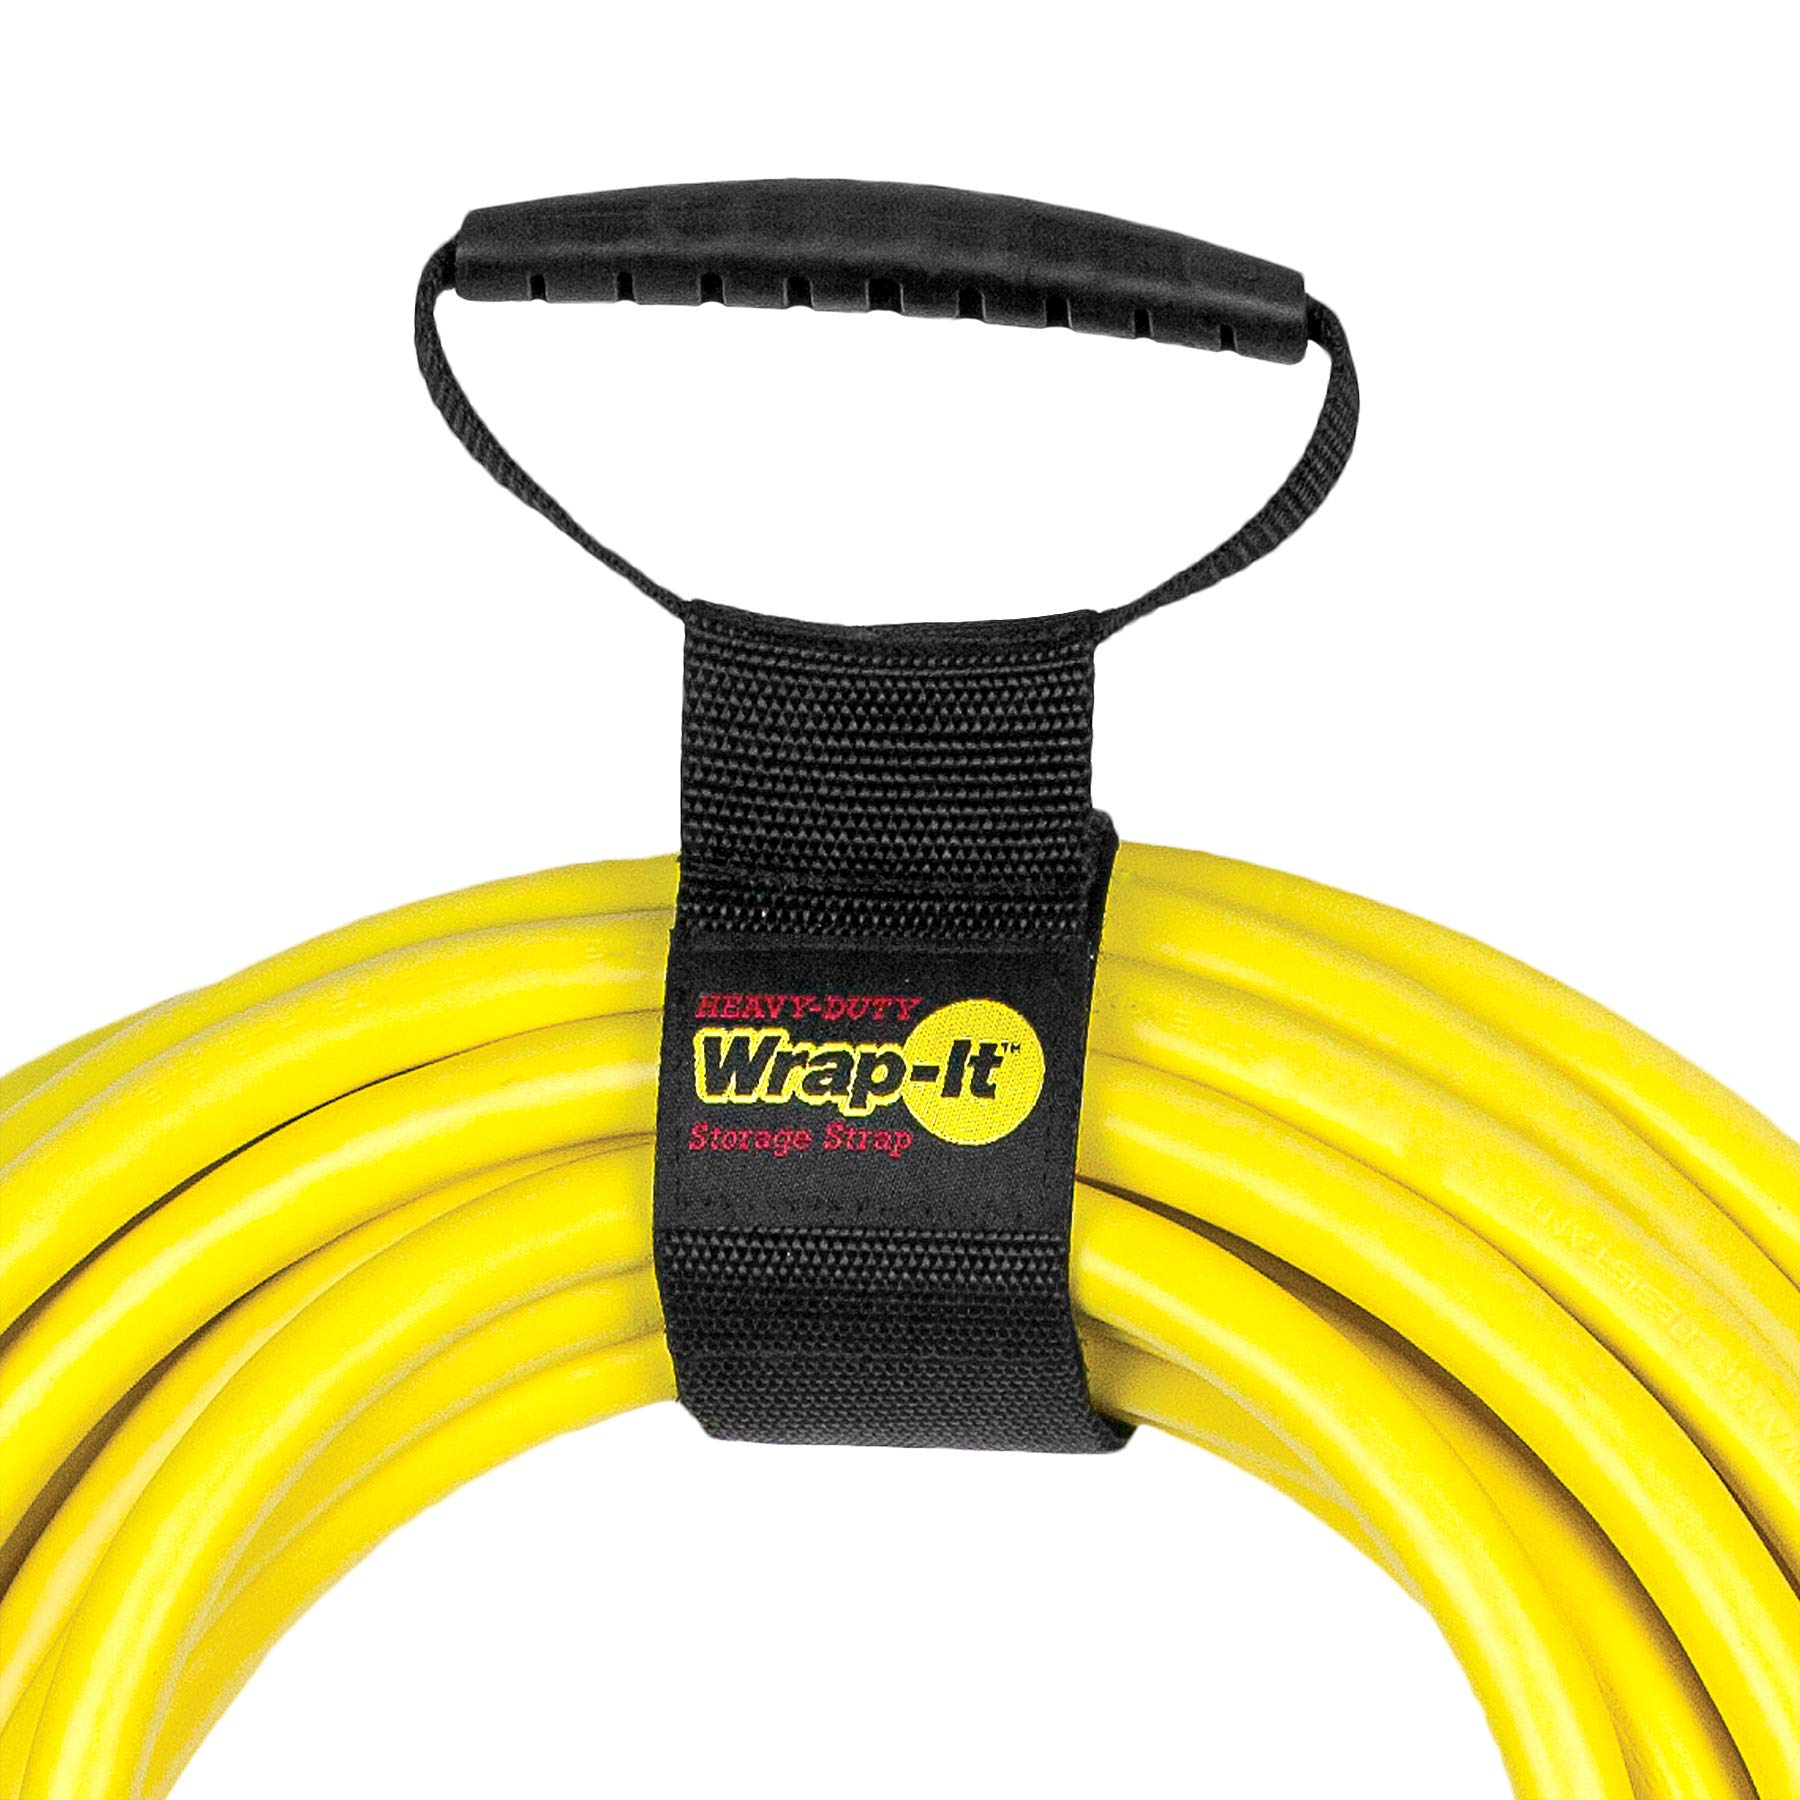 Easy-Carry Wrap-It Storage Straps - 17'' (2 Pack) - Heavy-Duty Hook and Loop Cord Carrying Strap, Hanger, and Organizer with Handle for Extension Cords, Electric Cables, Hoses and More